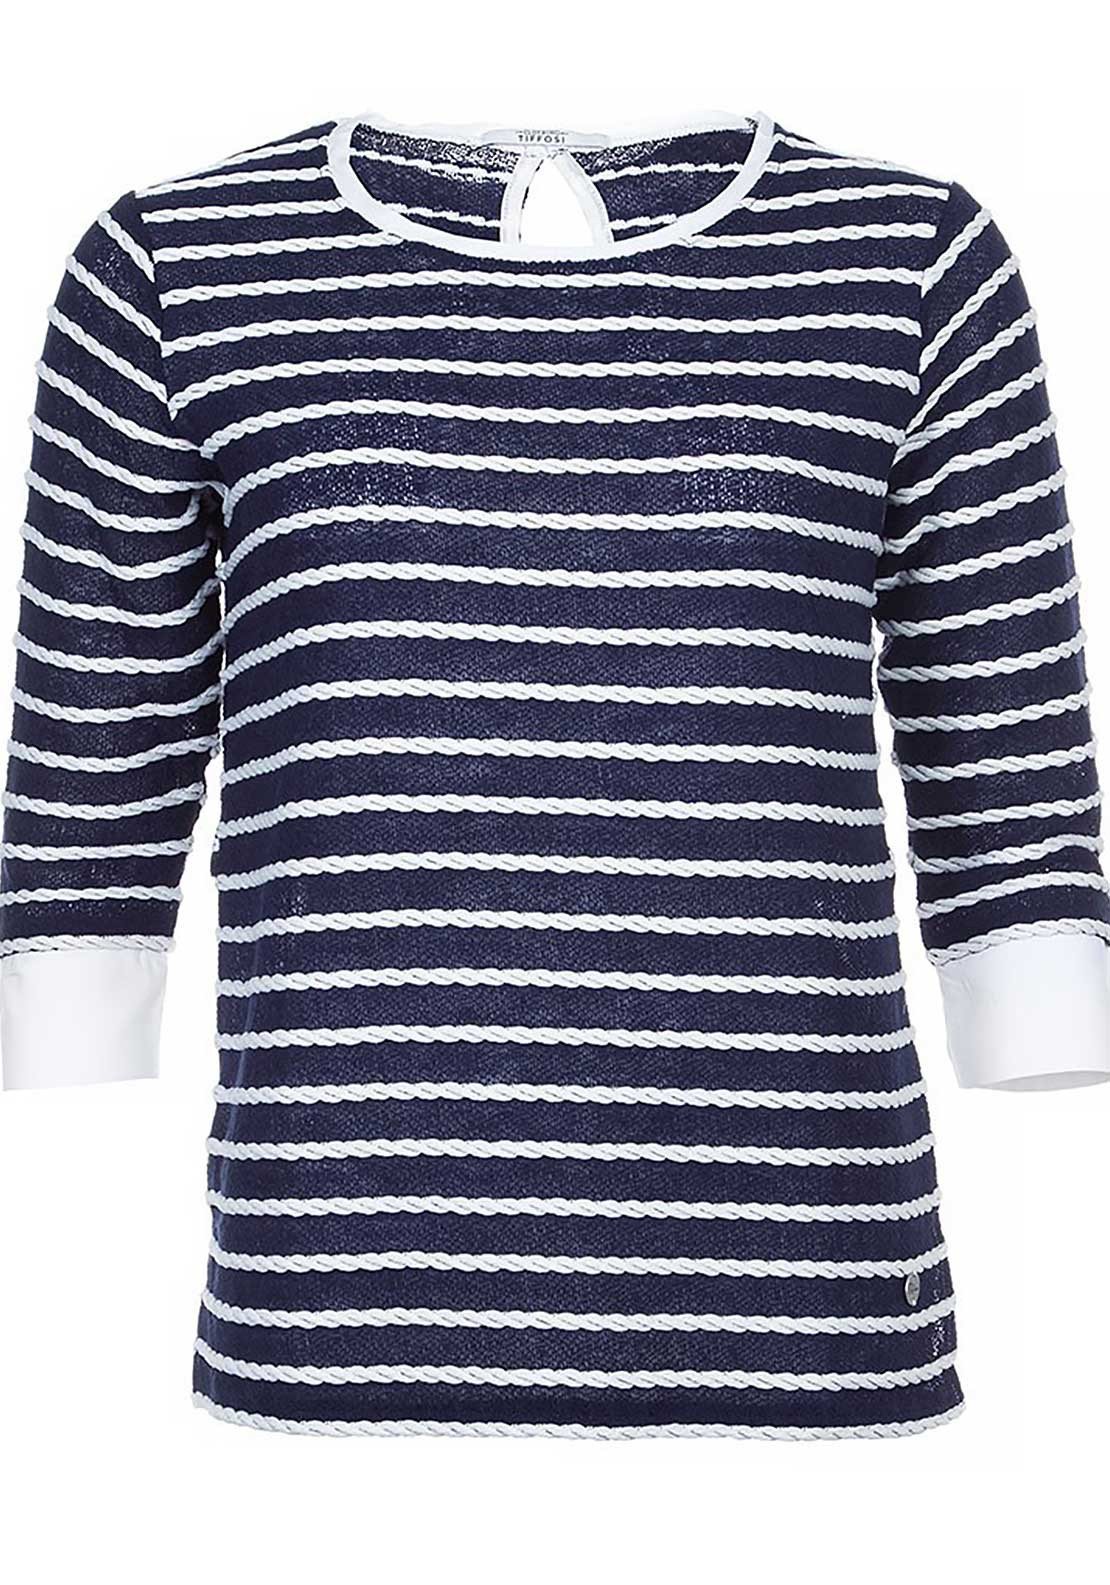 Tiffosi Womens Padua Rope Stripe Knitted jumper, Navy